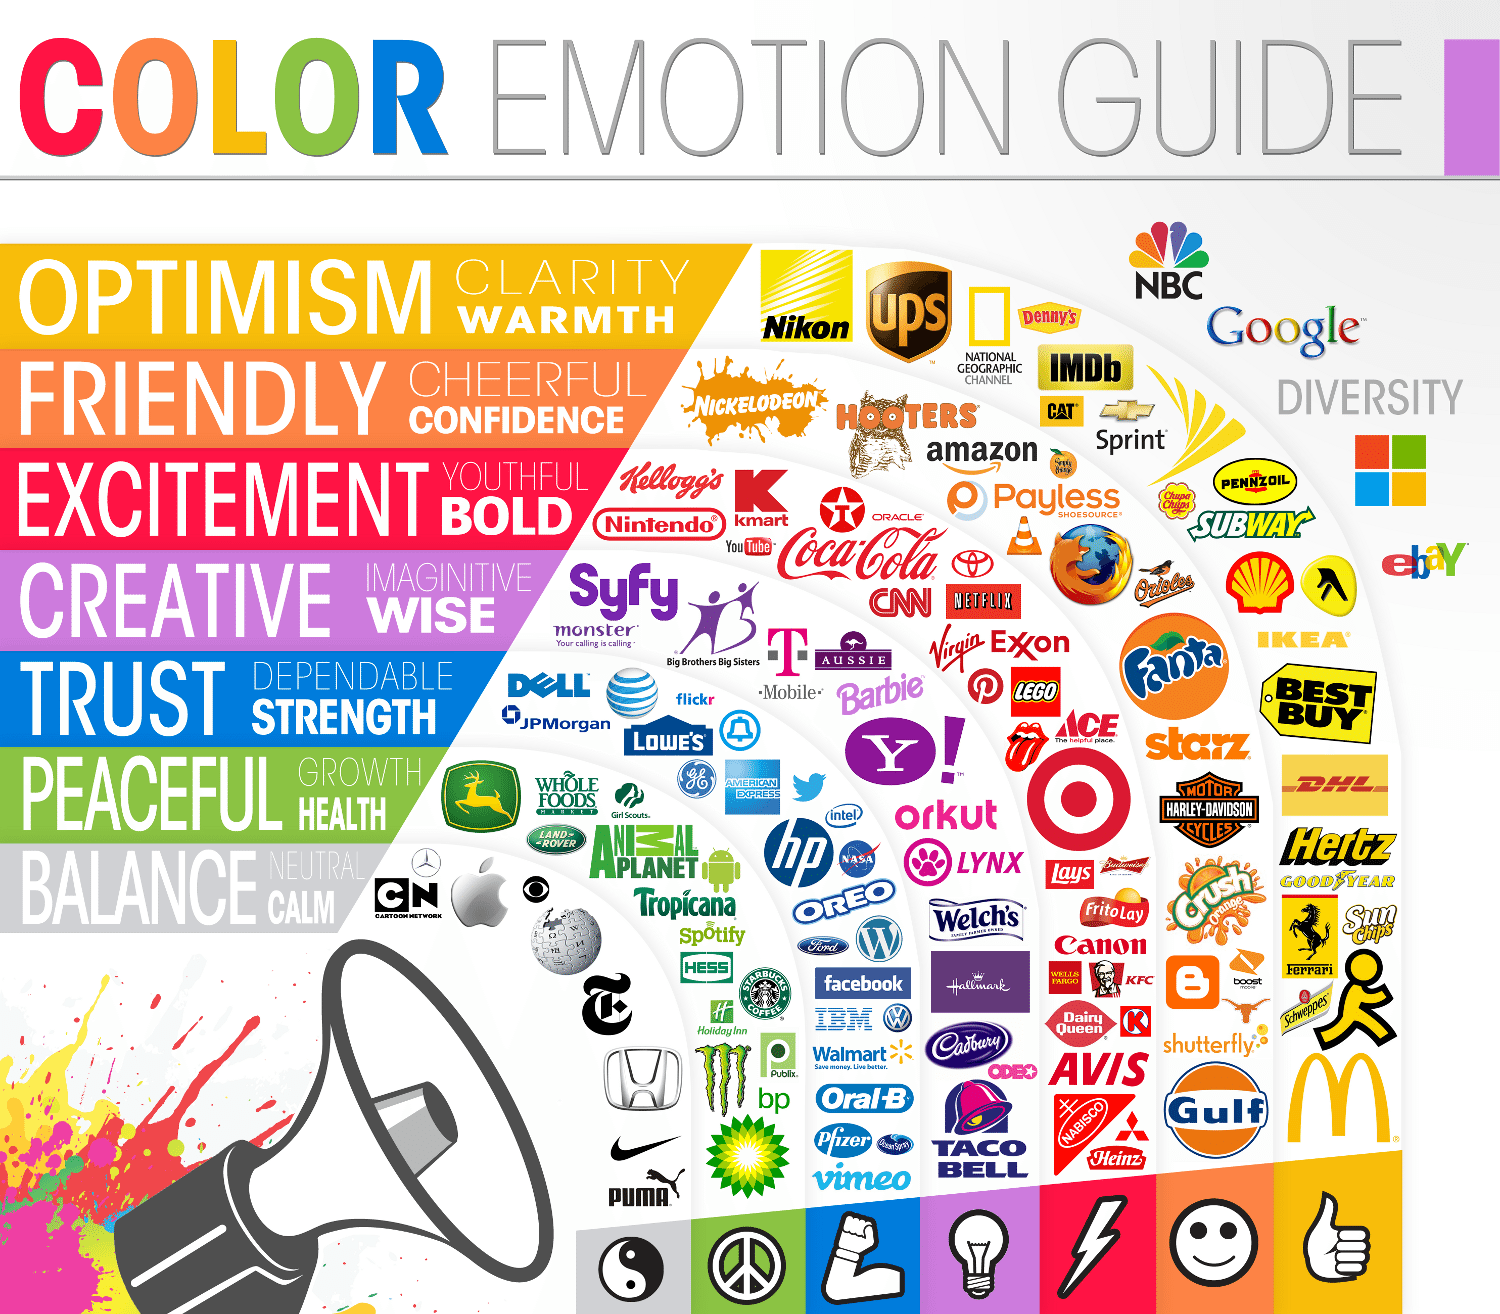 the science of colors in marketing: color guide